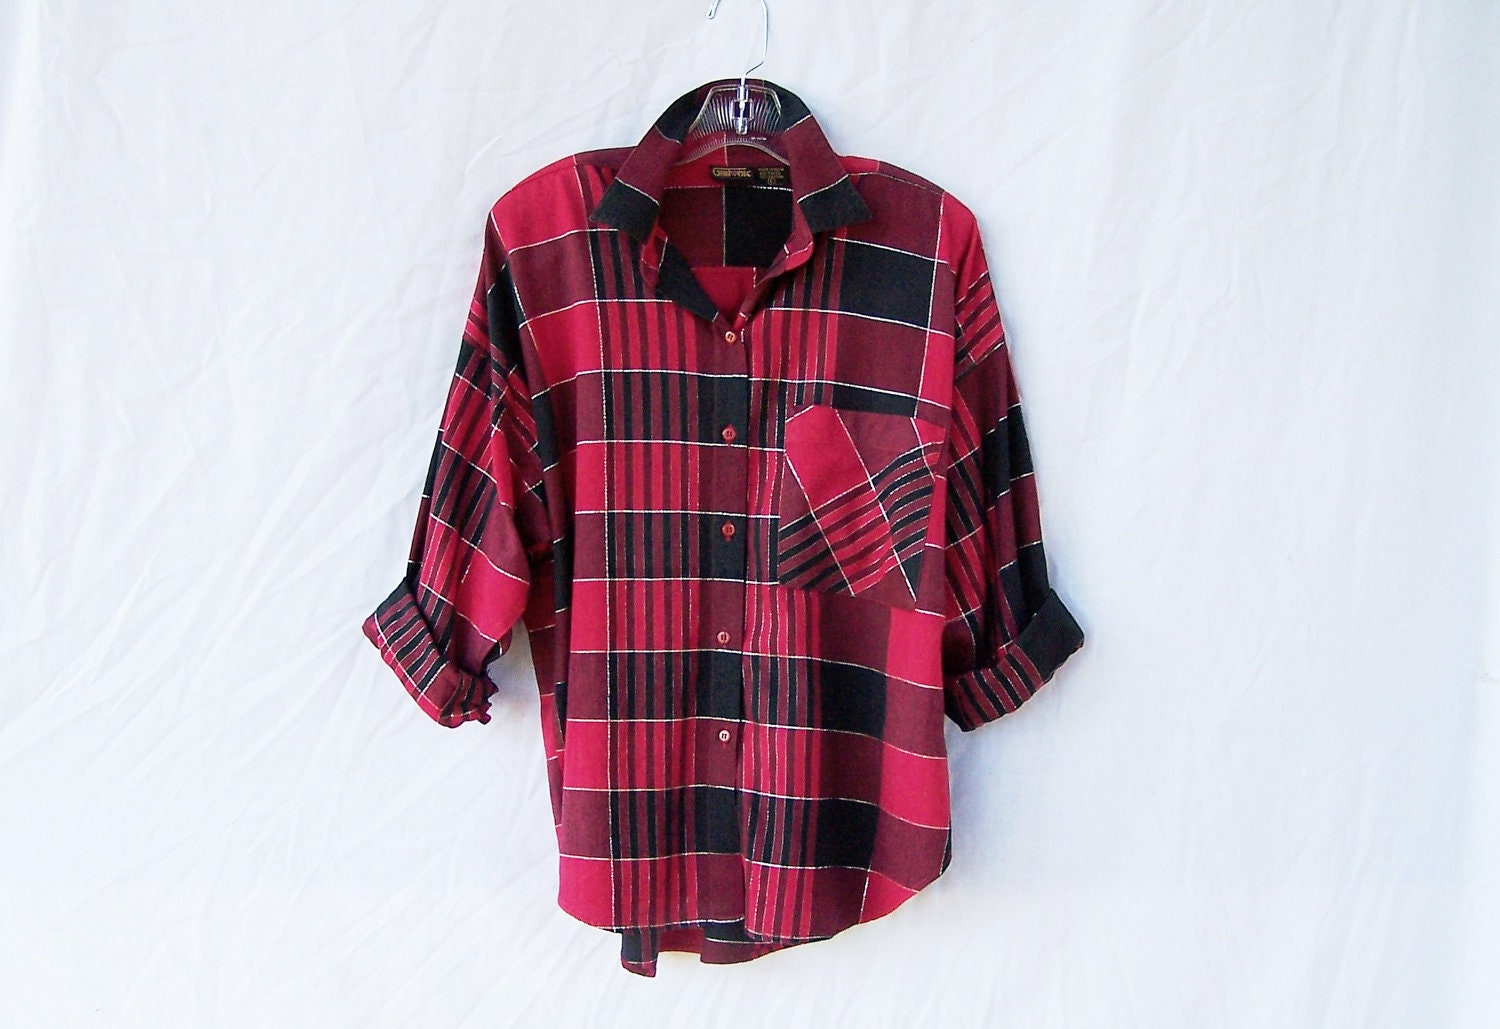 Womens 1980s Red And Black Plaid Shirt Oversized By: womens red tartan plaid shirt